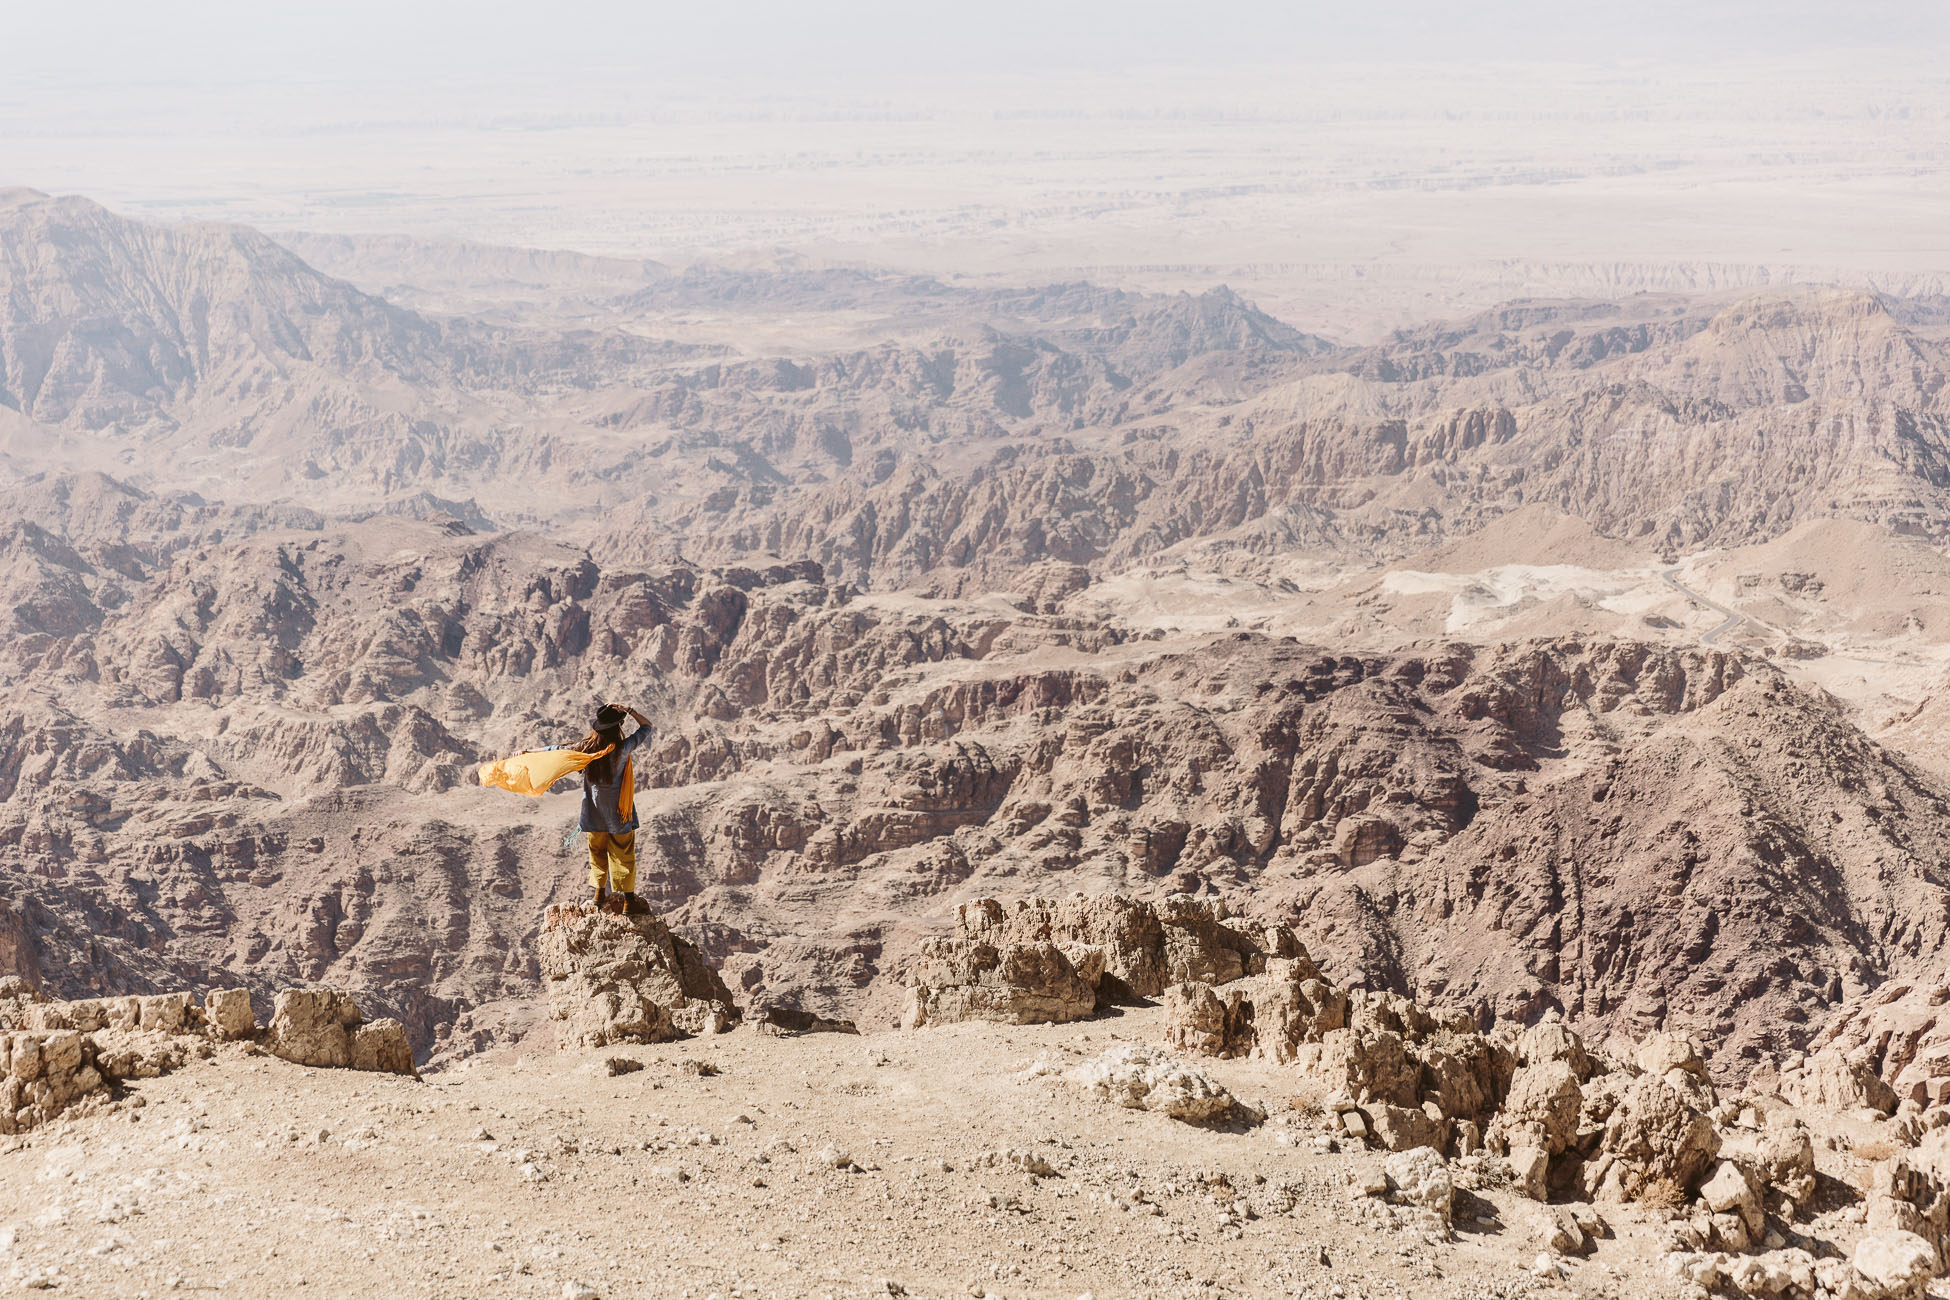 Views of the Jordan Valley